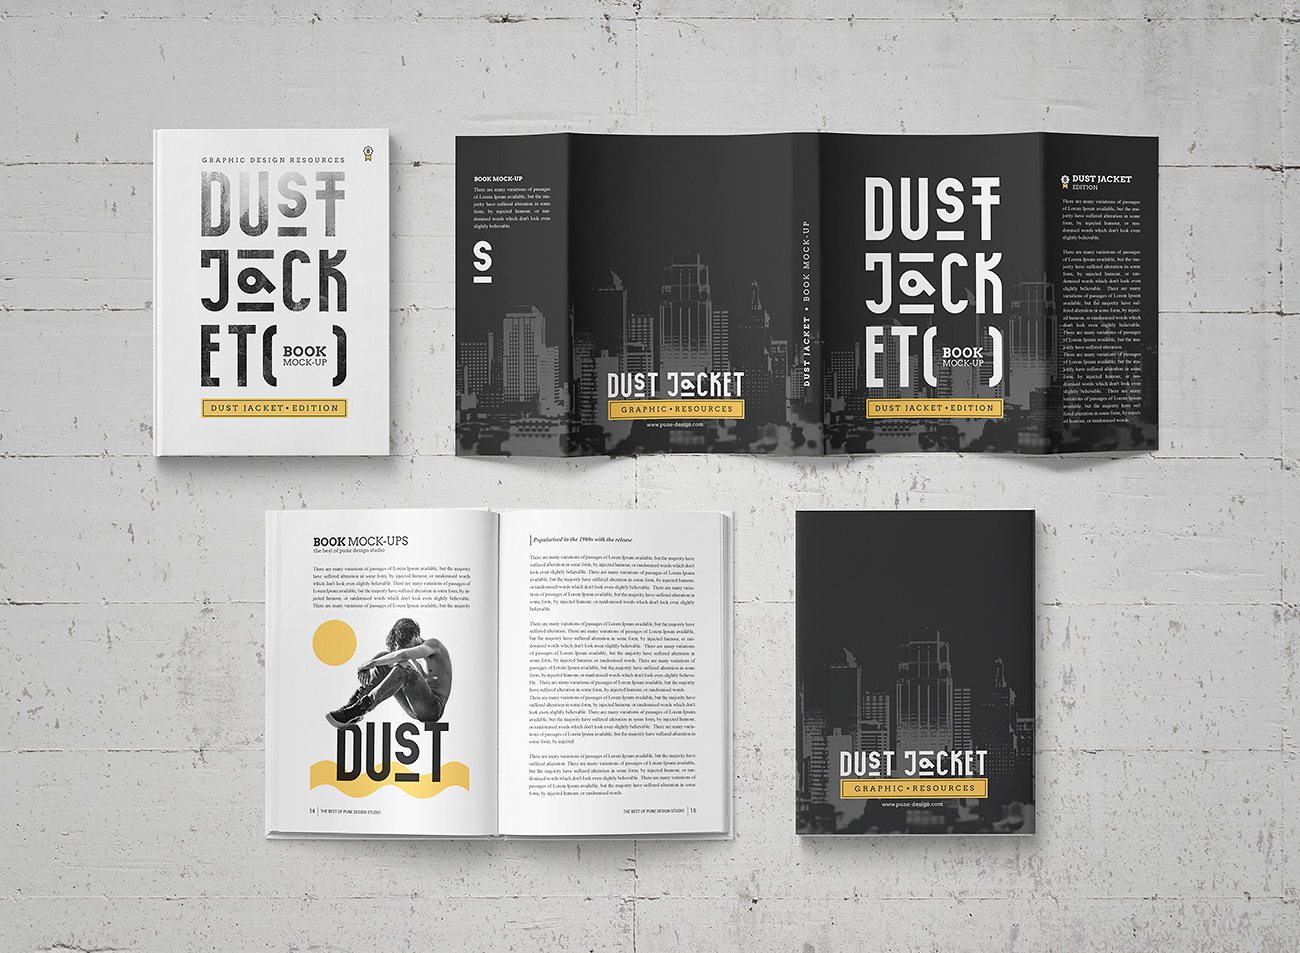 Book-mockup-dust-jacket-009